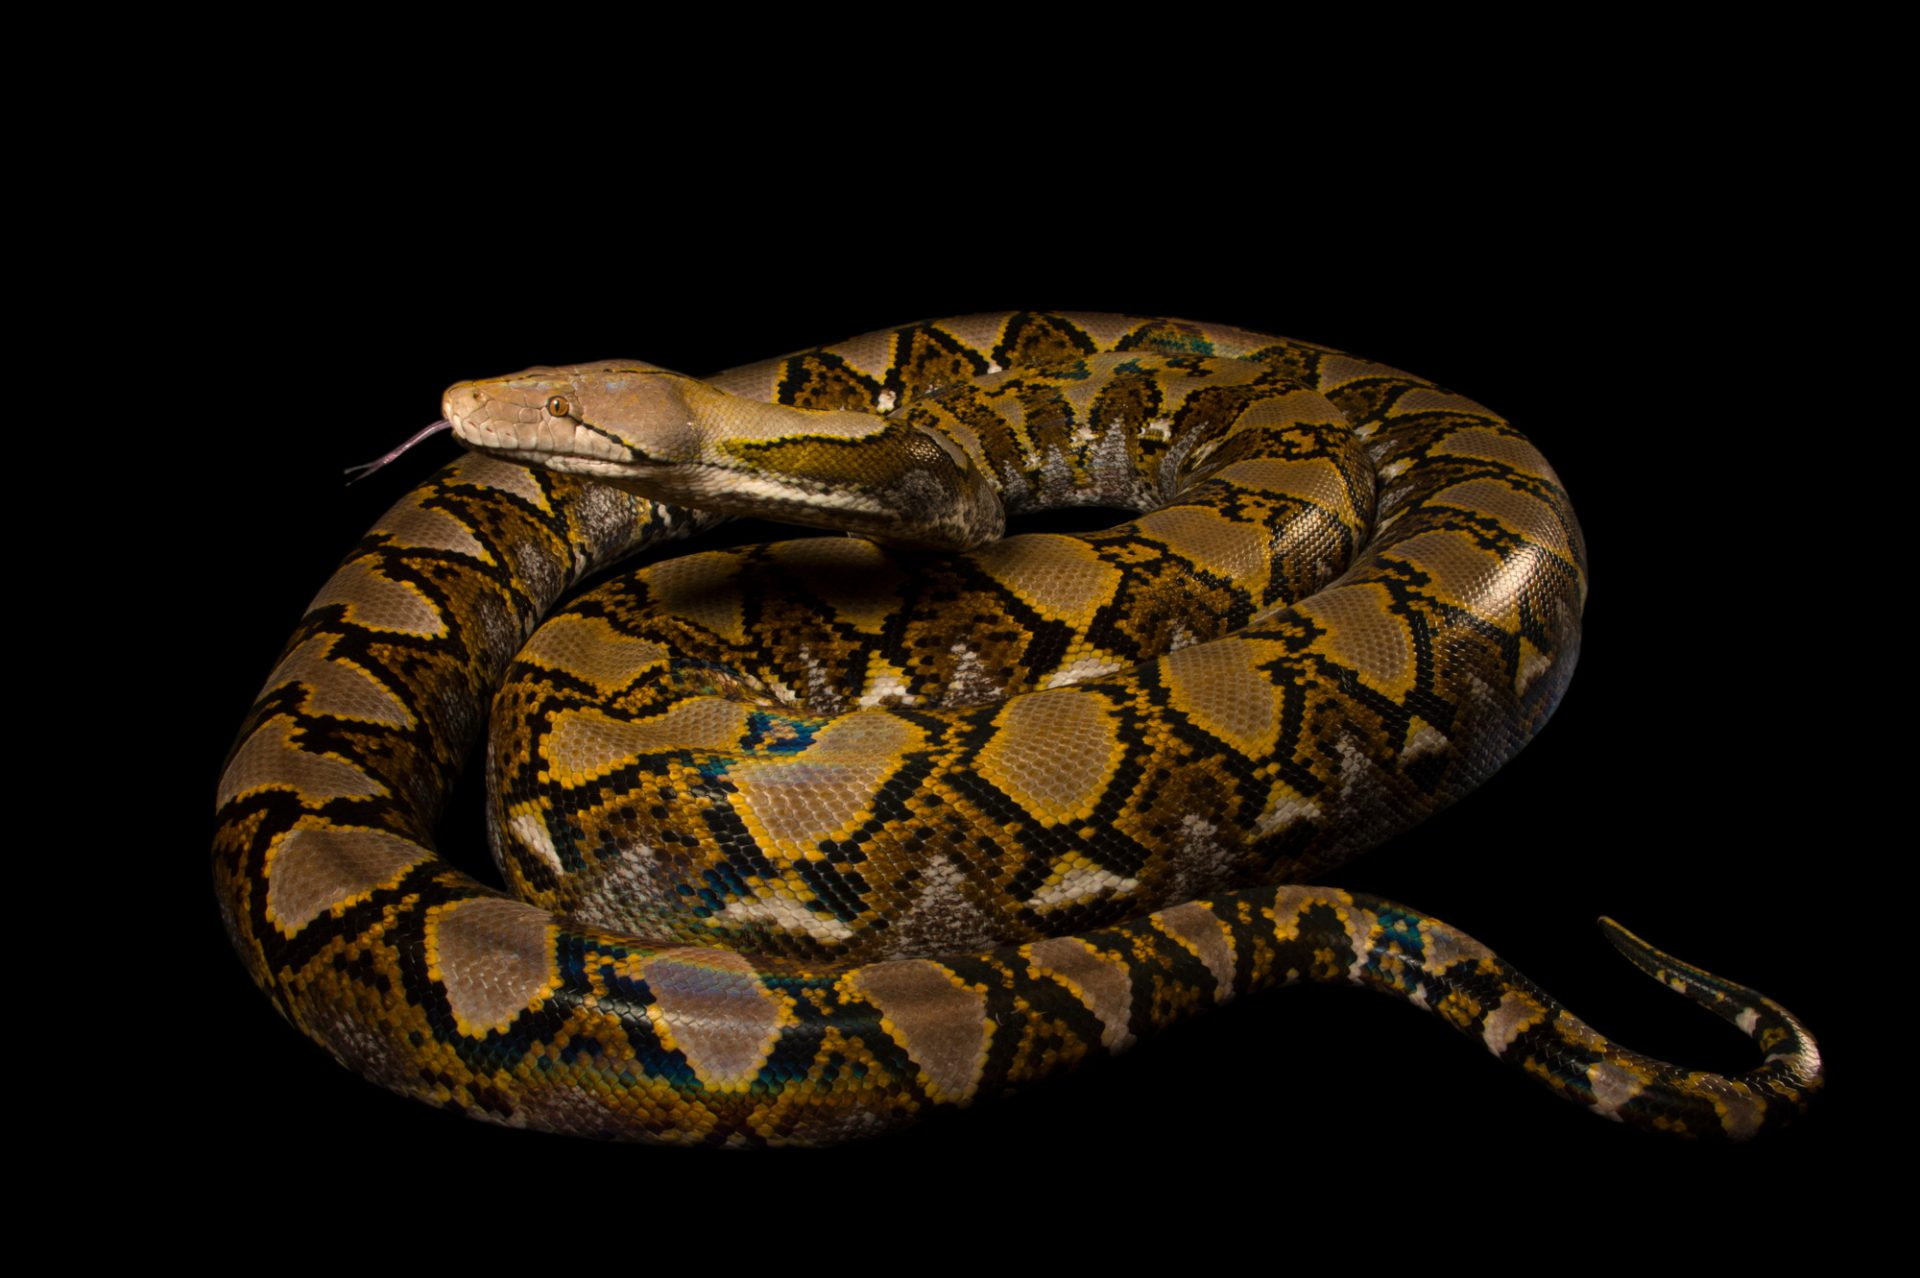 Photo: A 200-lb reticulated python (Broghammerus reticulatus) at the Naples Zoo.